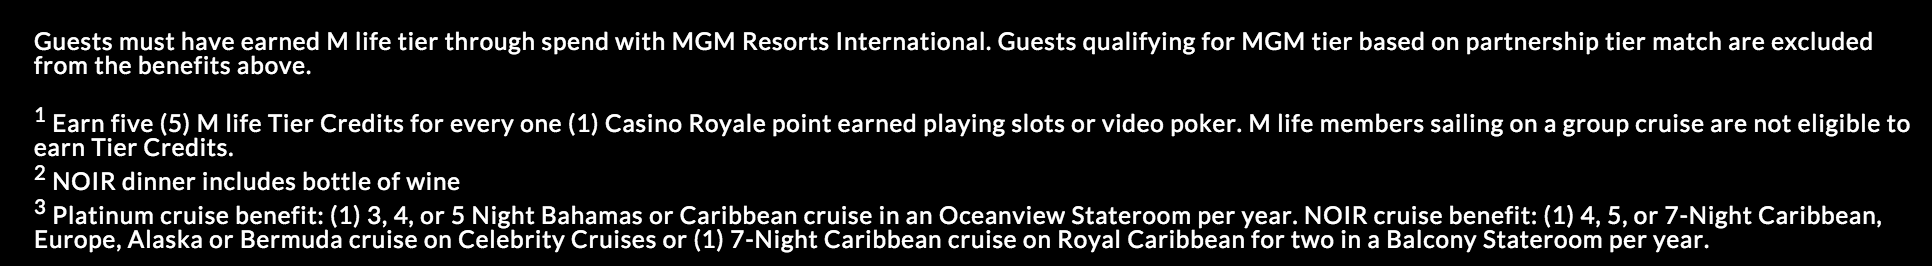 Celebrity Cruises - M life Rewards Partners - MGM Resorts